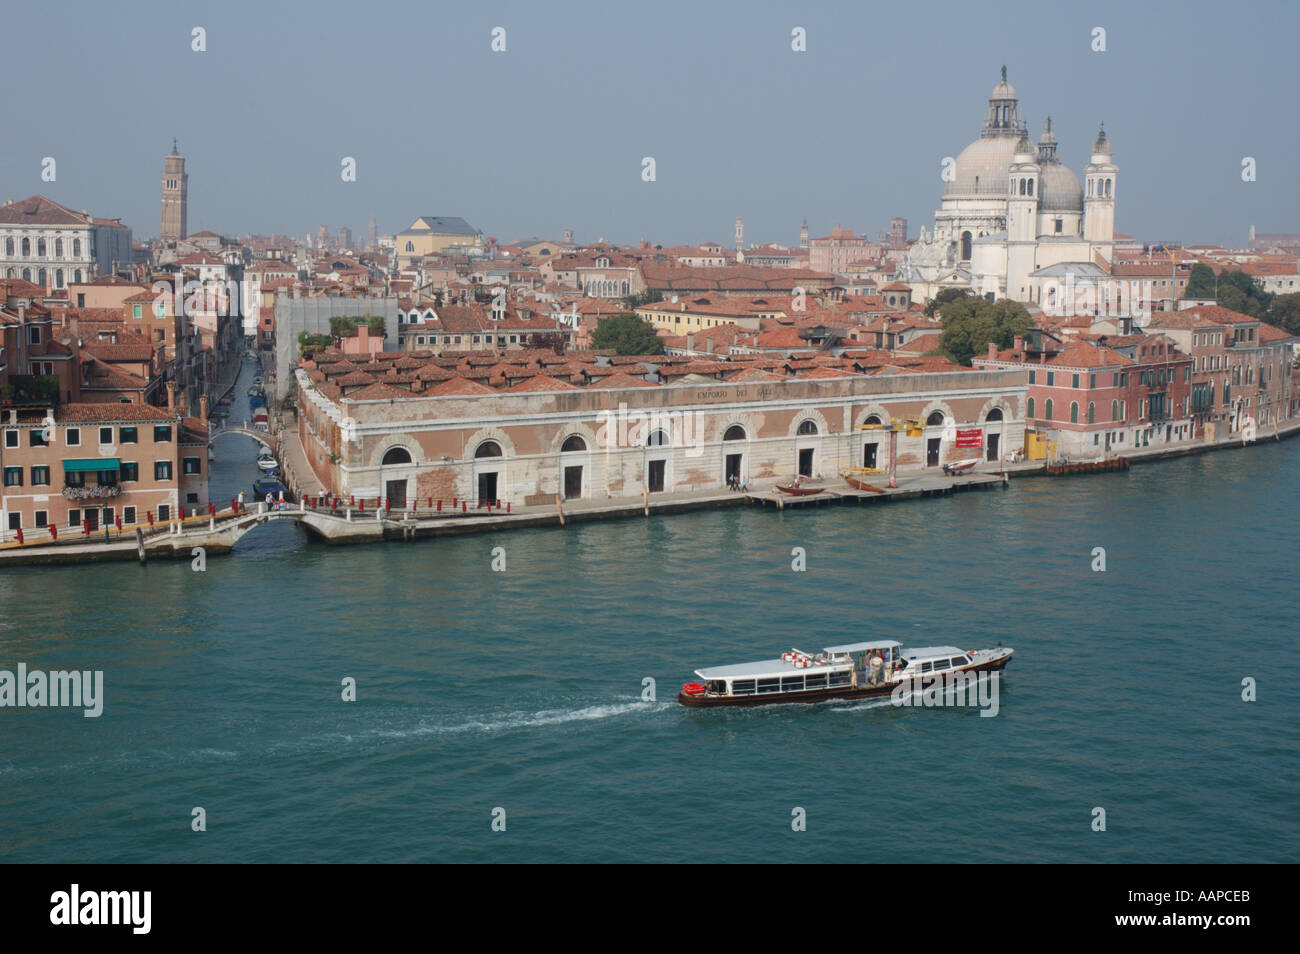 Aerial view of a vaporetto water bus heading east along the Giudecca Canal towards St Marks Square in Venice - Stock Image